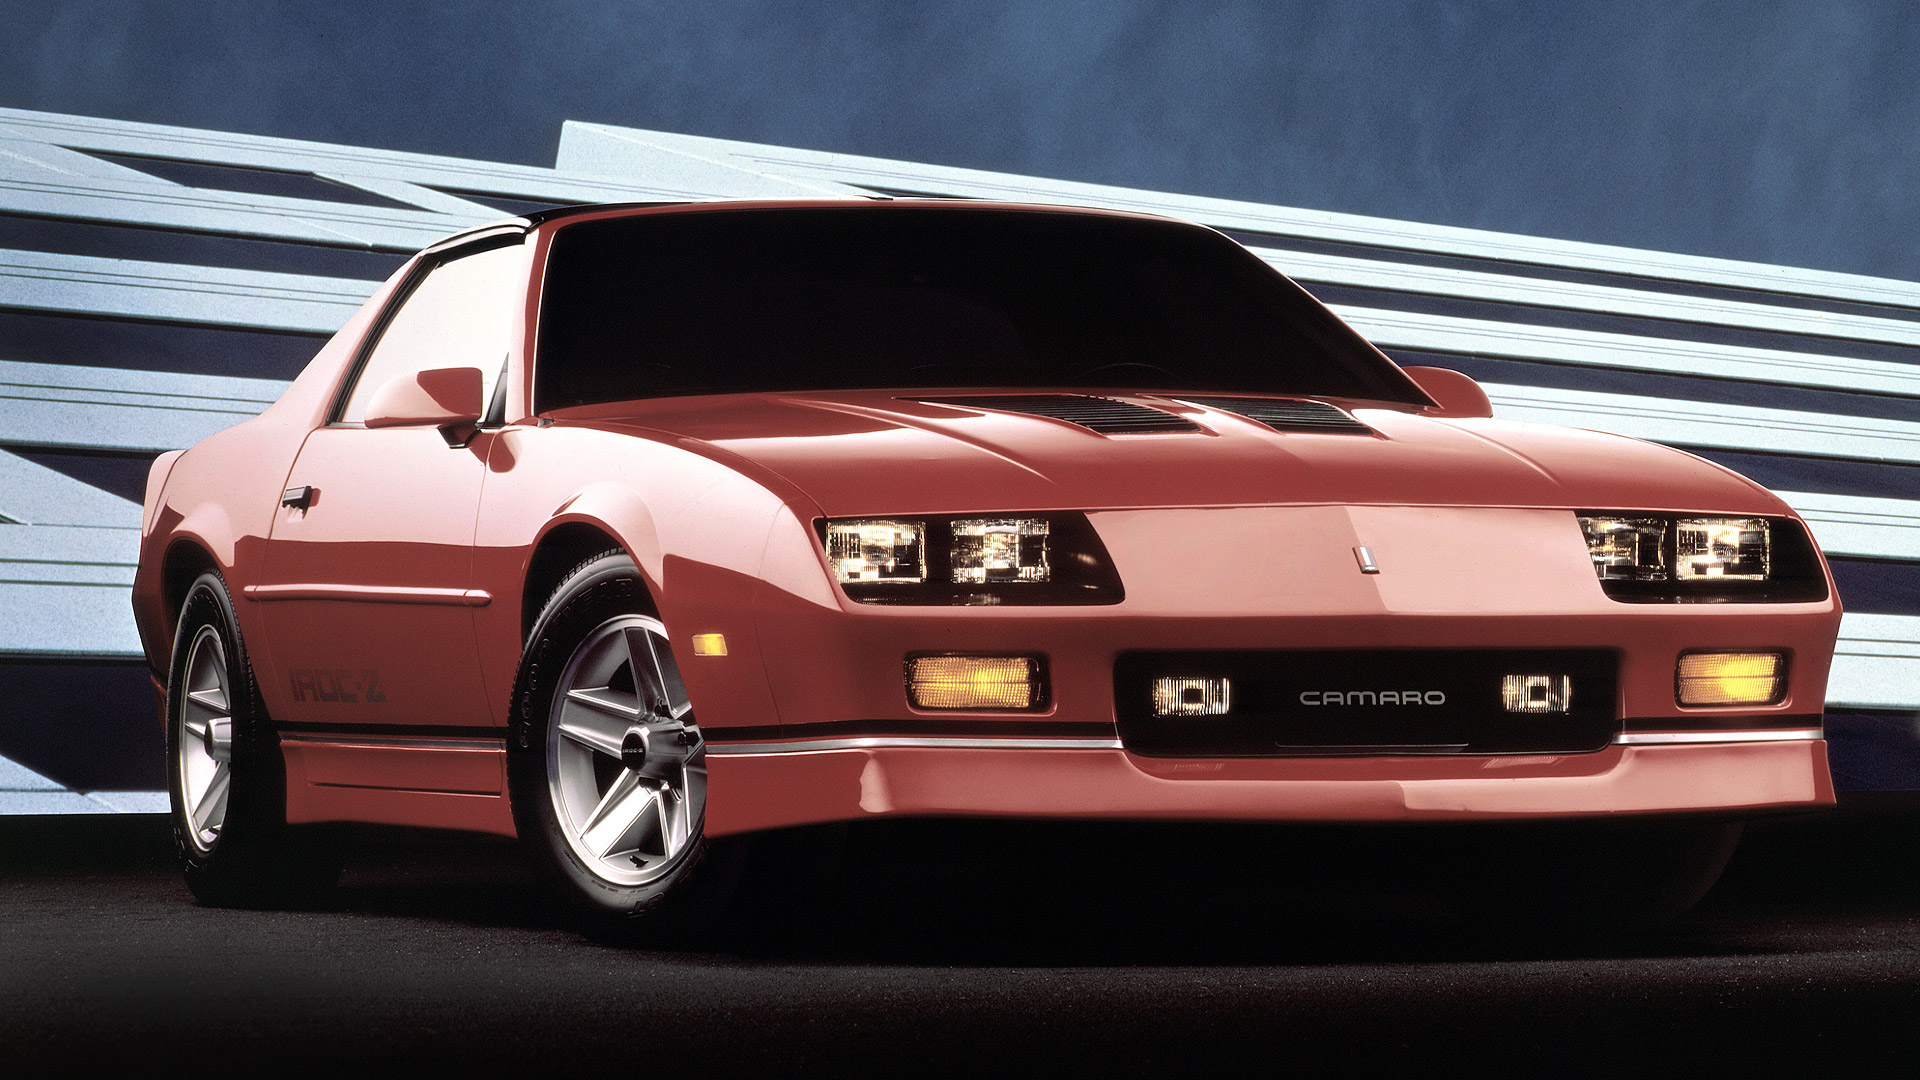 1987 Chevrolet Camaro IROC Z Wallpapers HD Images   WSupercars 1920x1080